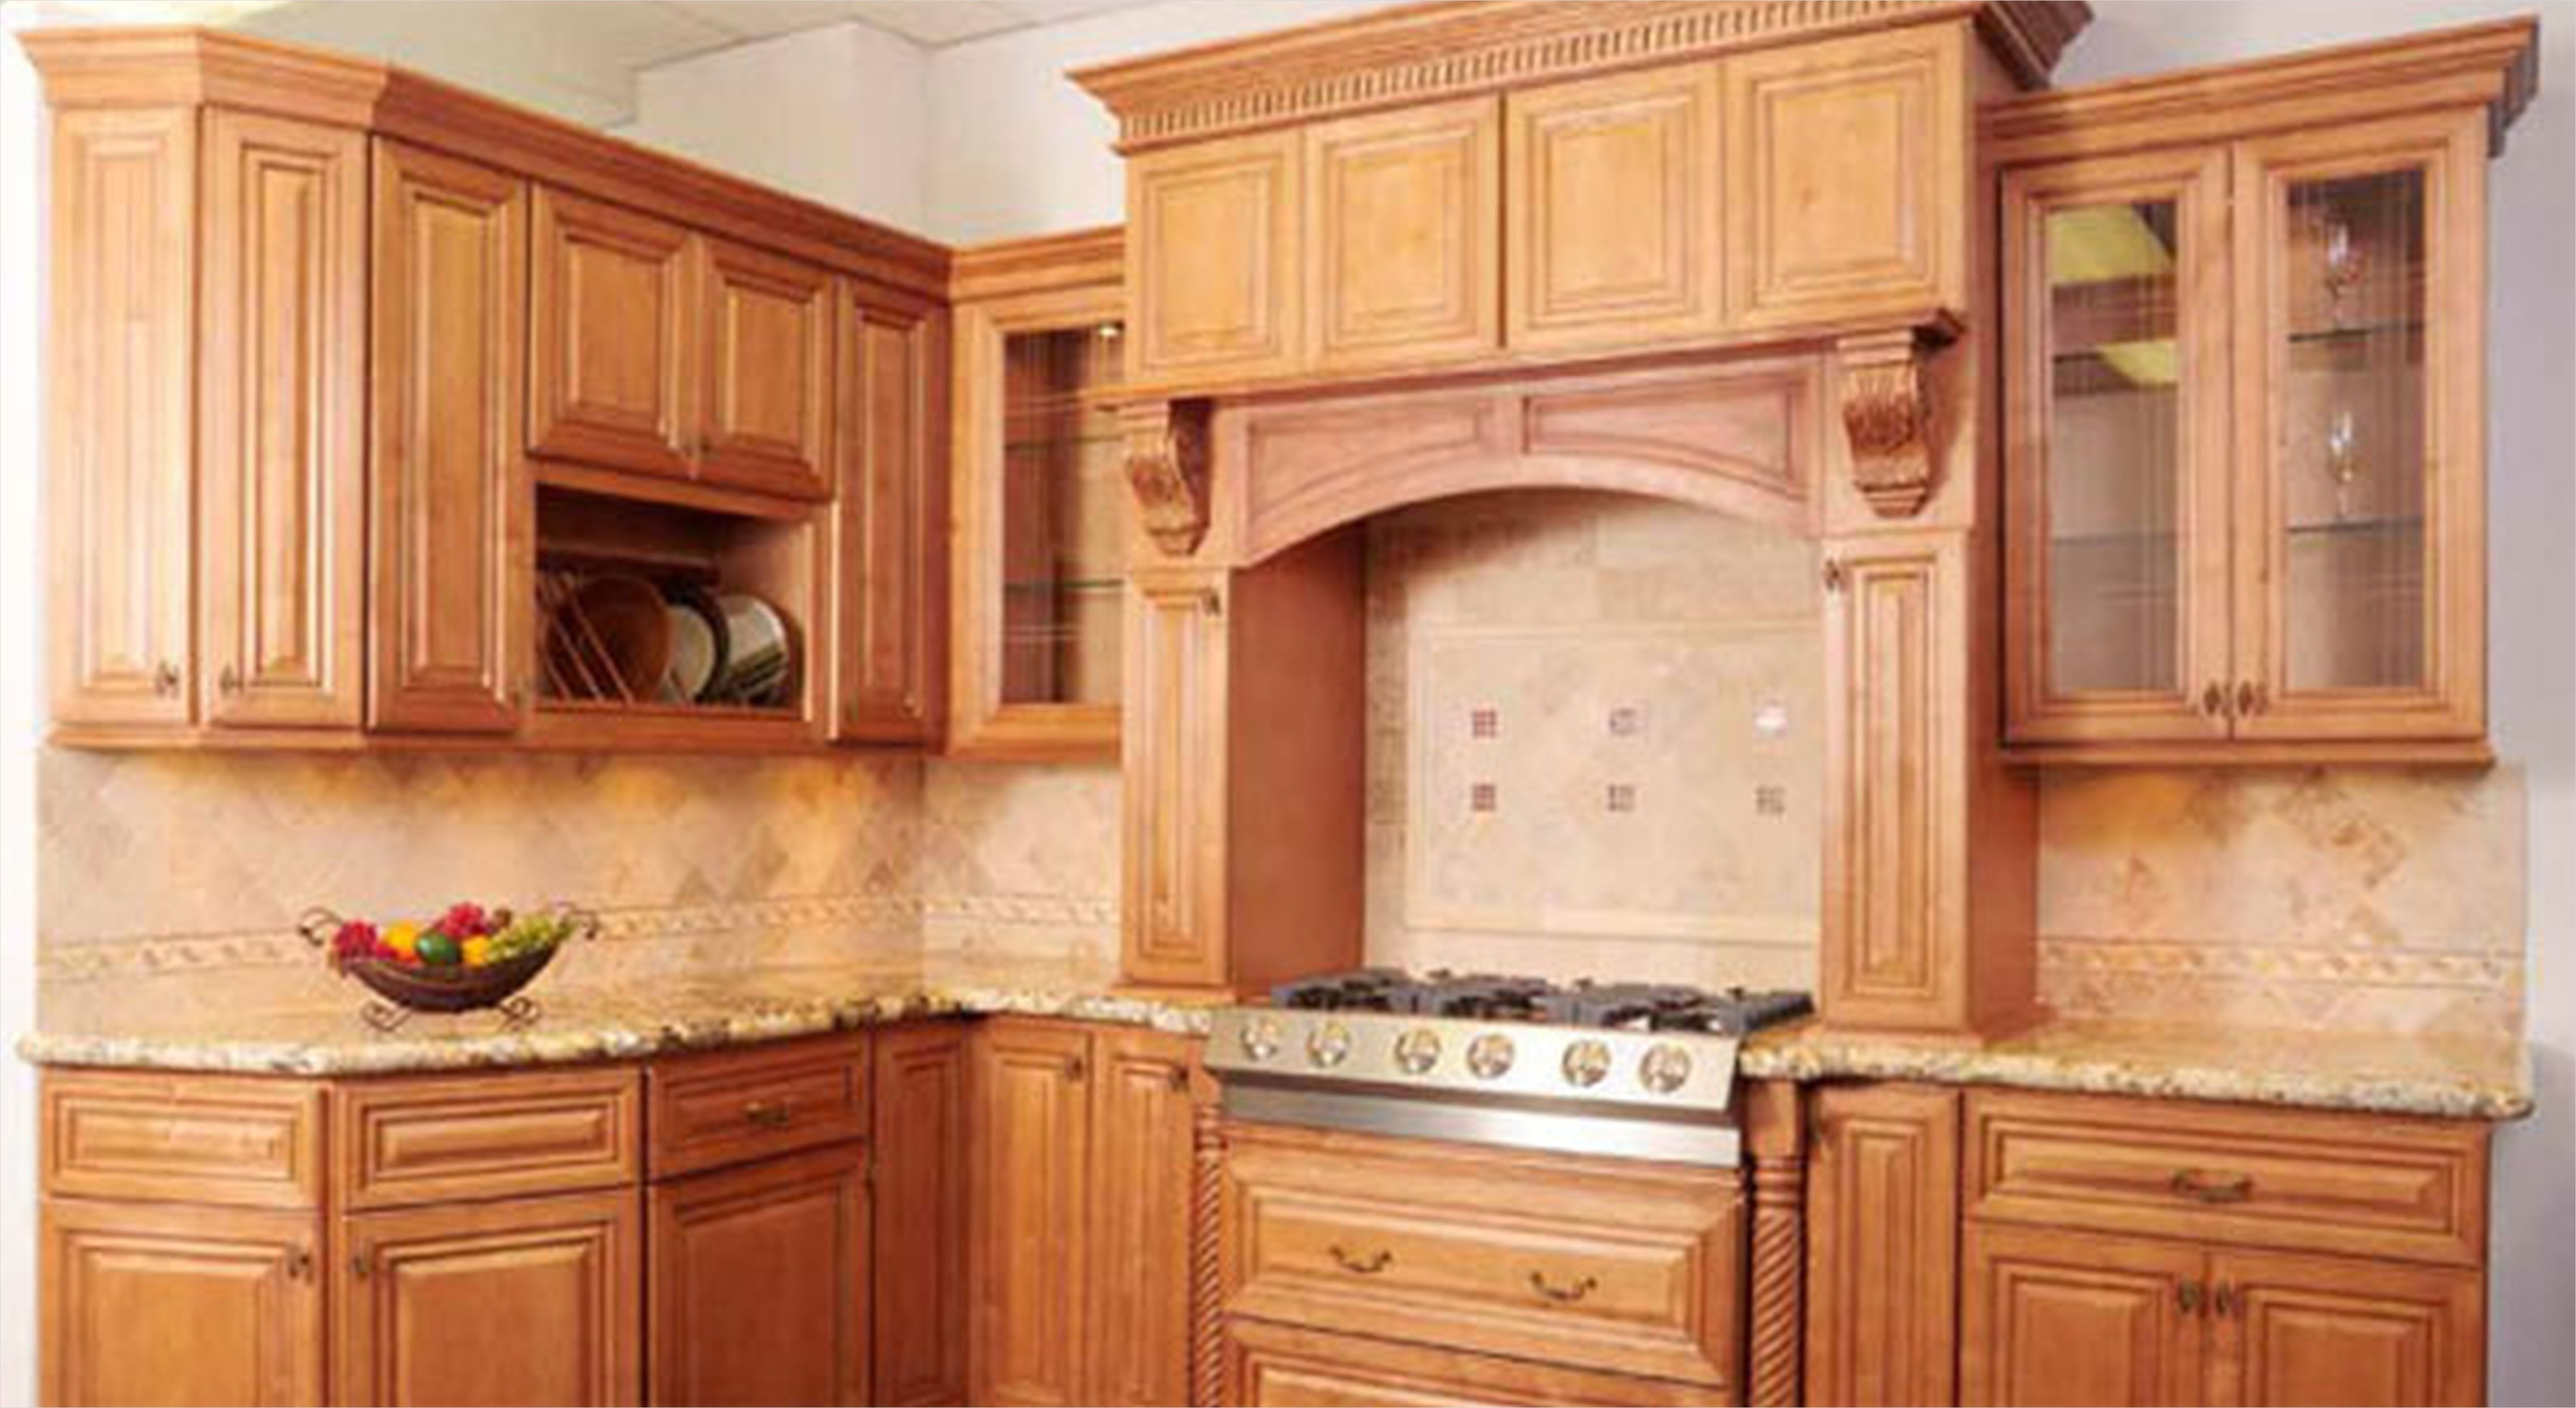 41 Attractive Kitchen with Maple Cabinets Color Ideas ... on Maple Cabinets Kitchen Ideas  id=62382